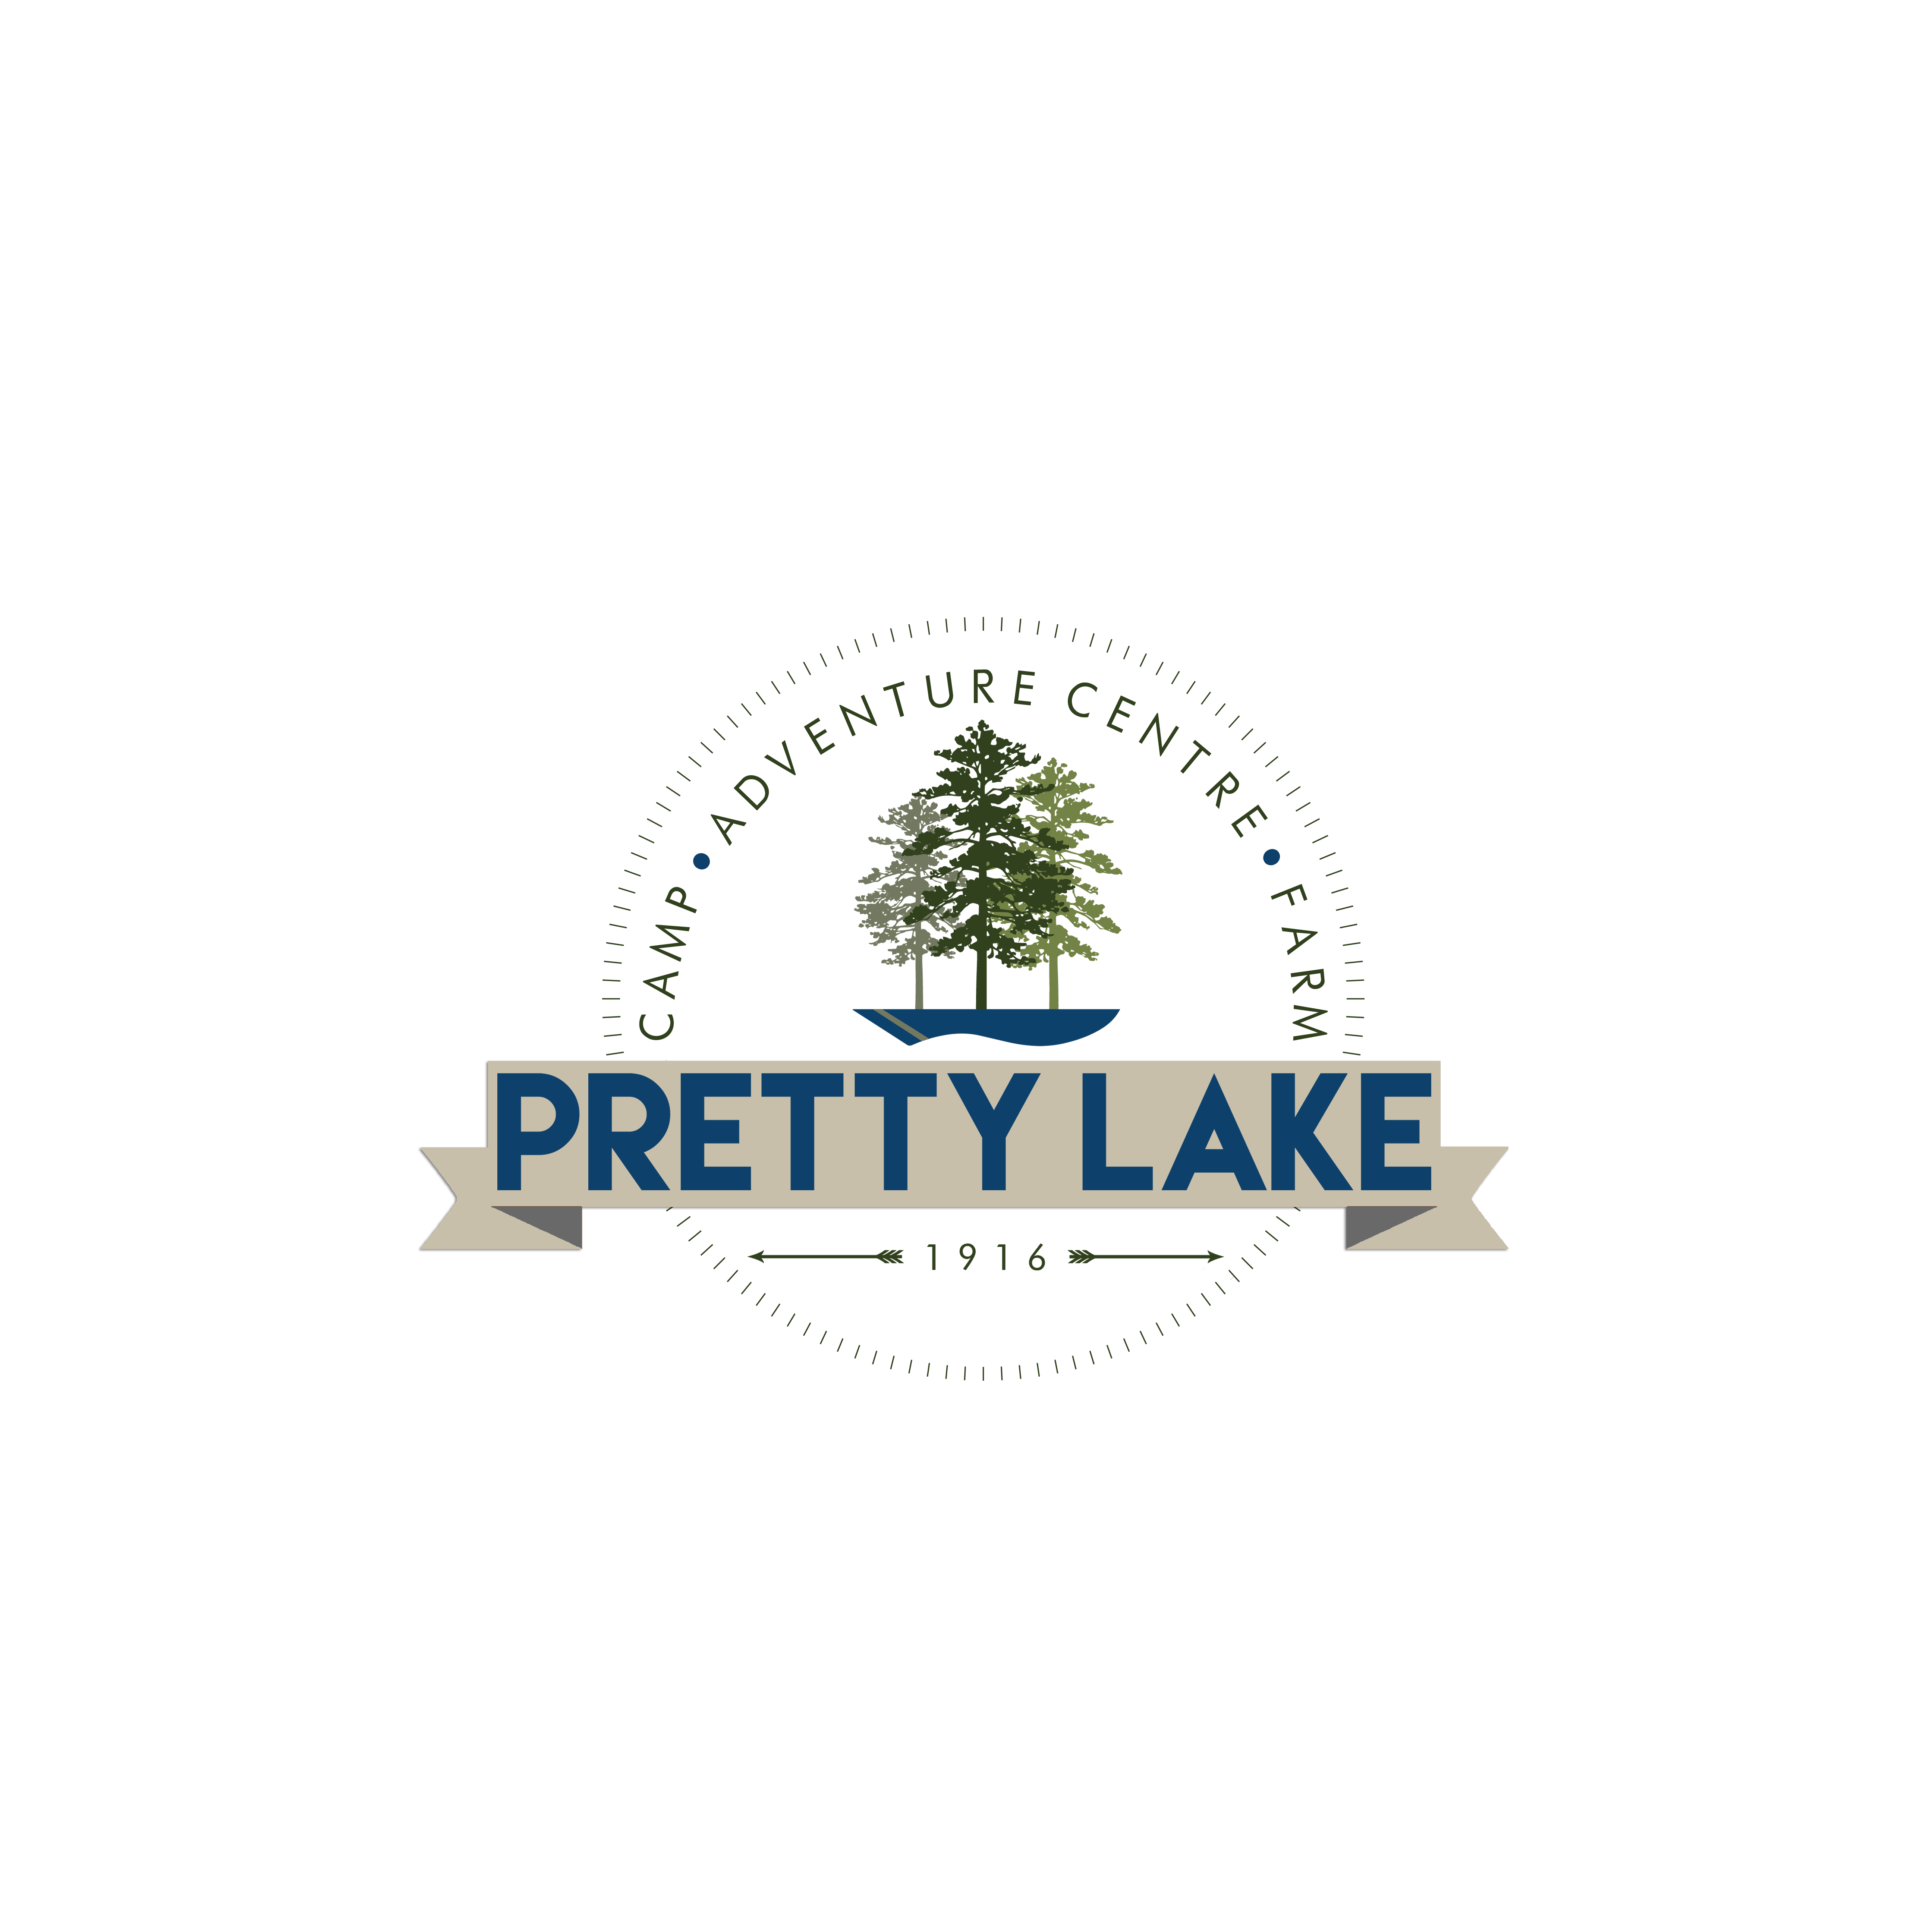 Pretty Lake Adventure Centre